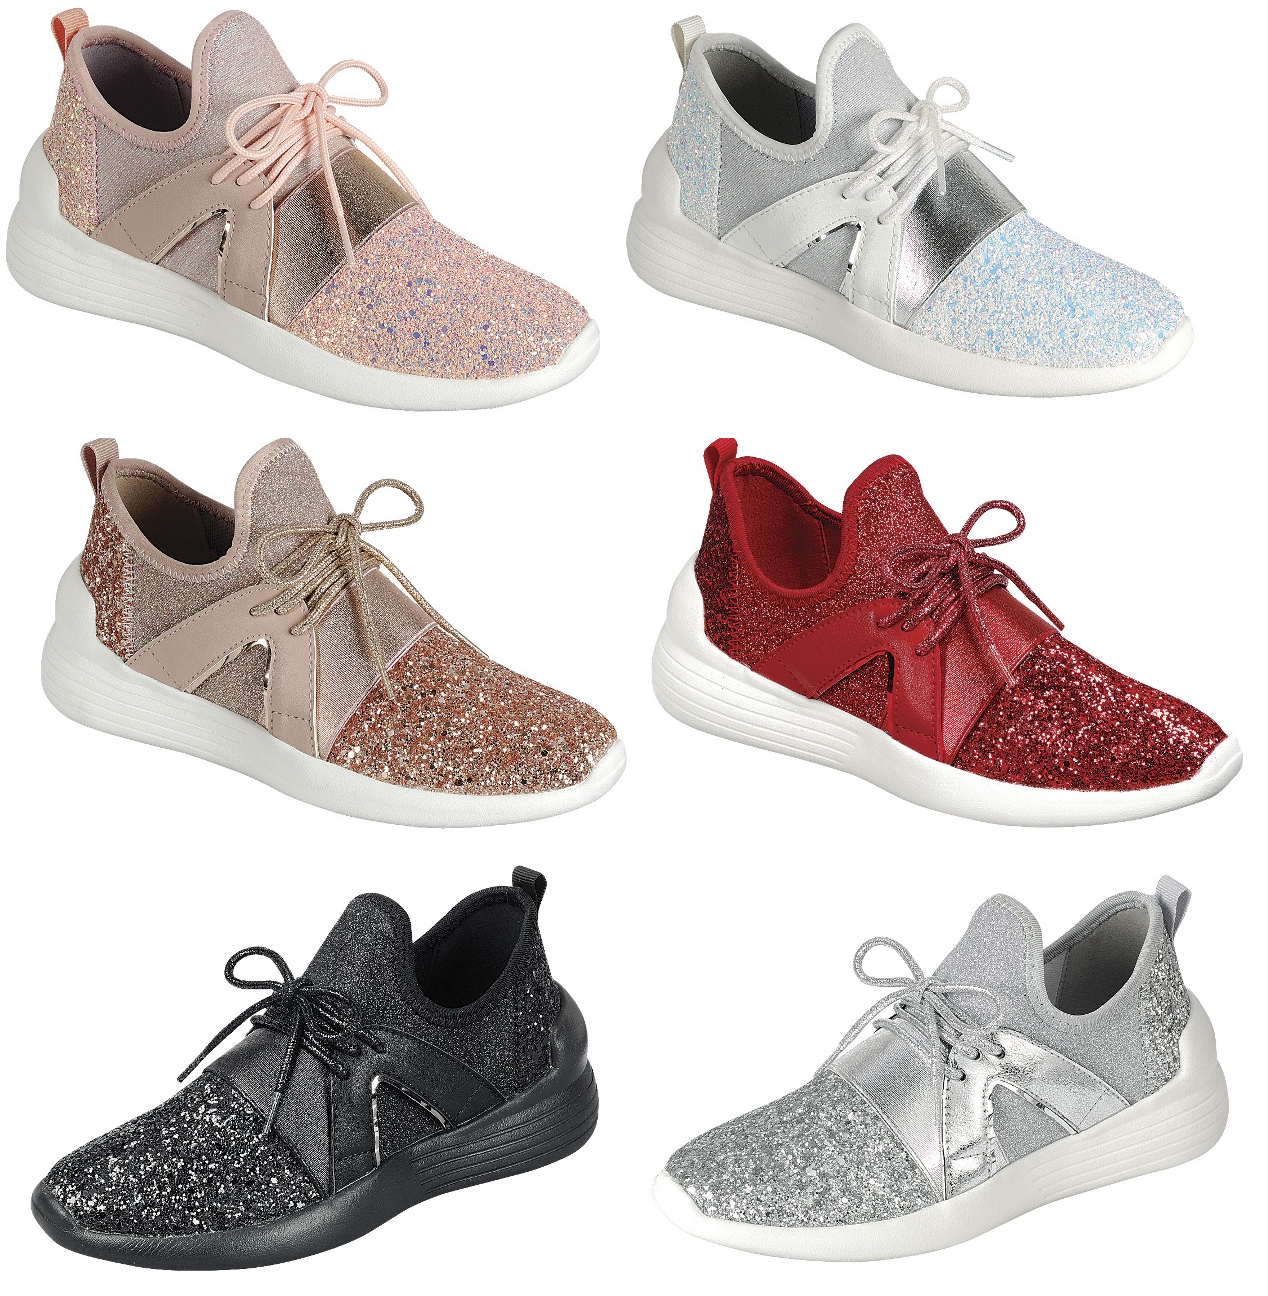 5c2682e0487c New Women's Sequin Glitter Lace Up Fashion Shoes Comfort Athletic Sneakers